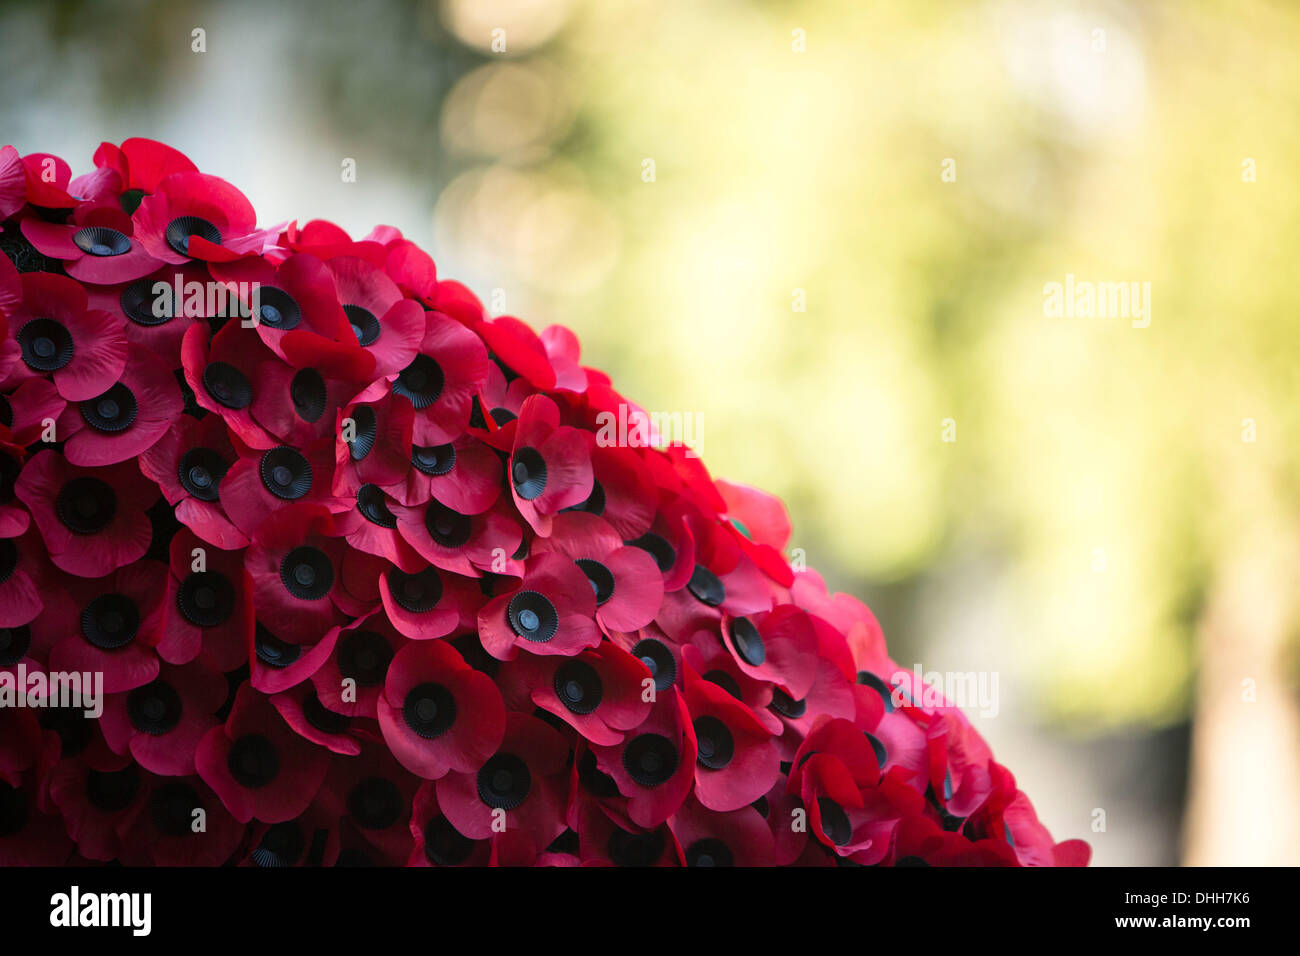 London, UK, UK. 10th Nov, 2013. Poppies are pictured at the Fields of Remembrance at Westminster Abbey in London, United Kingdom. © James Gasperotti/ZUMAPRESS.com/Alamy Live News - Stock Image